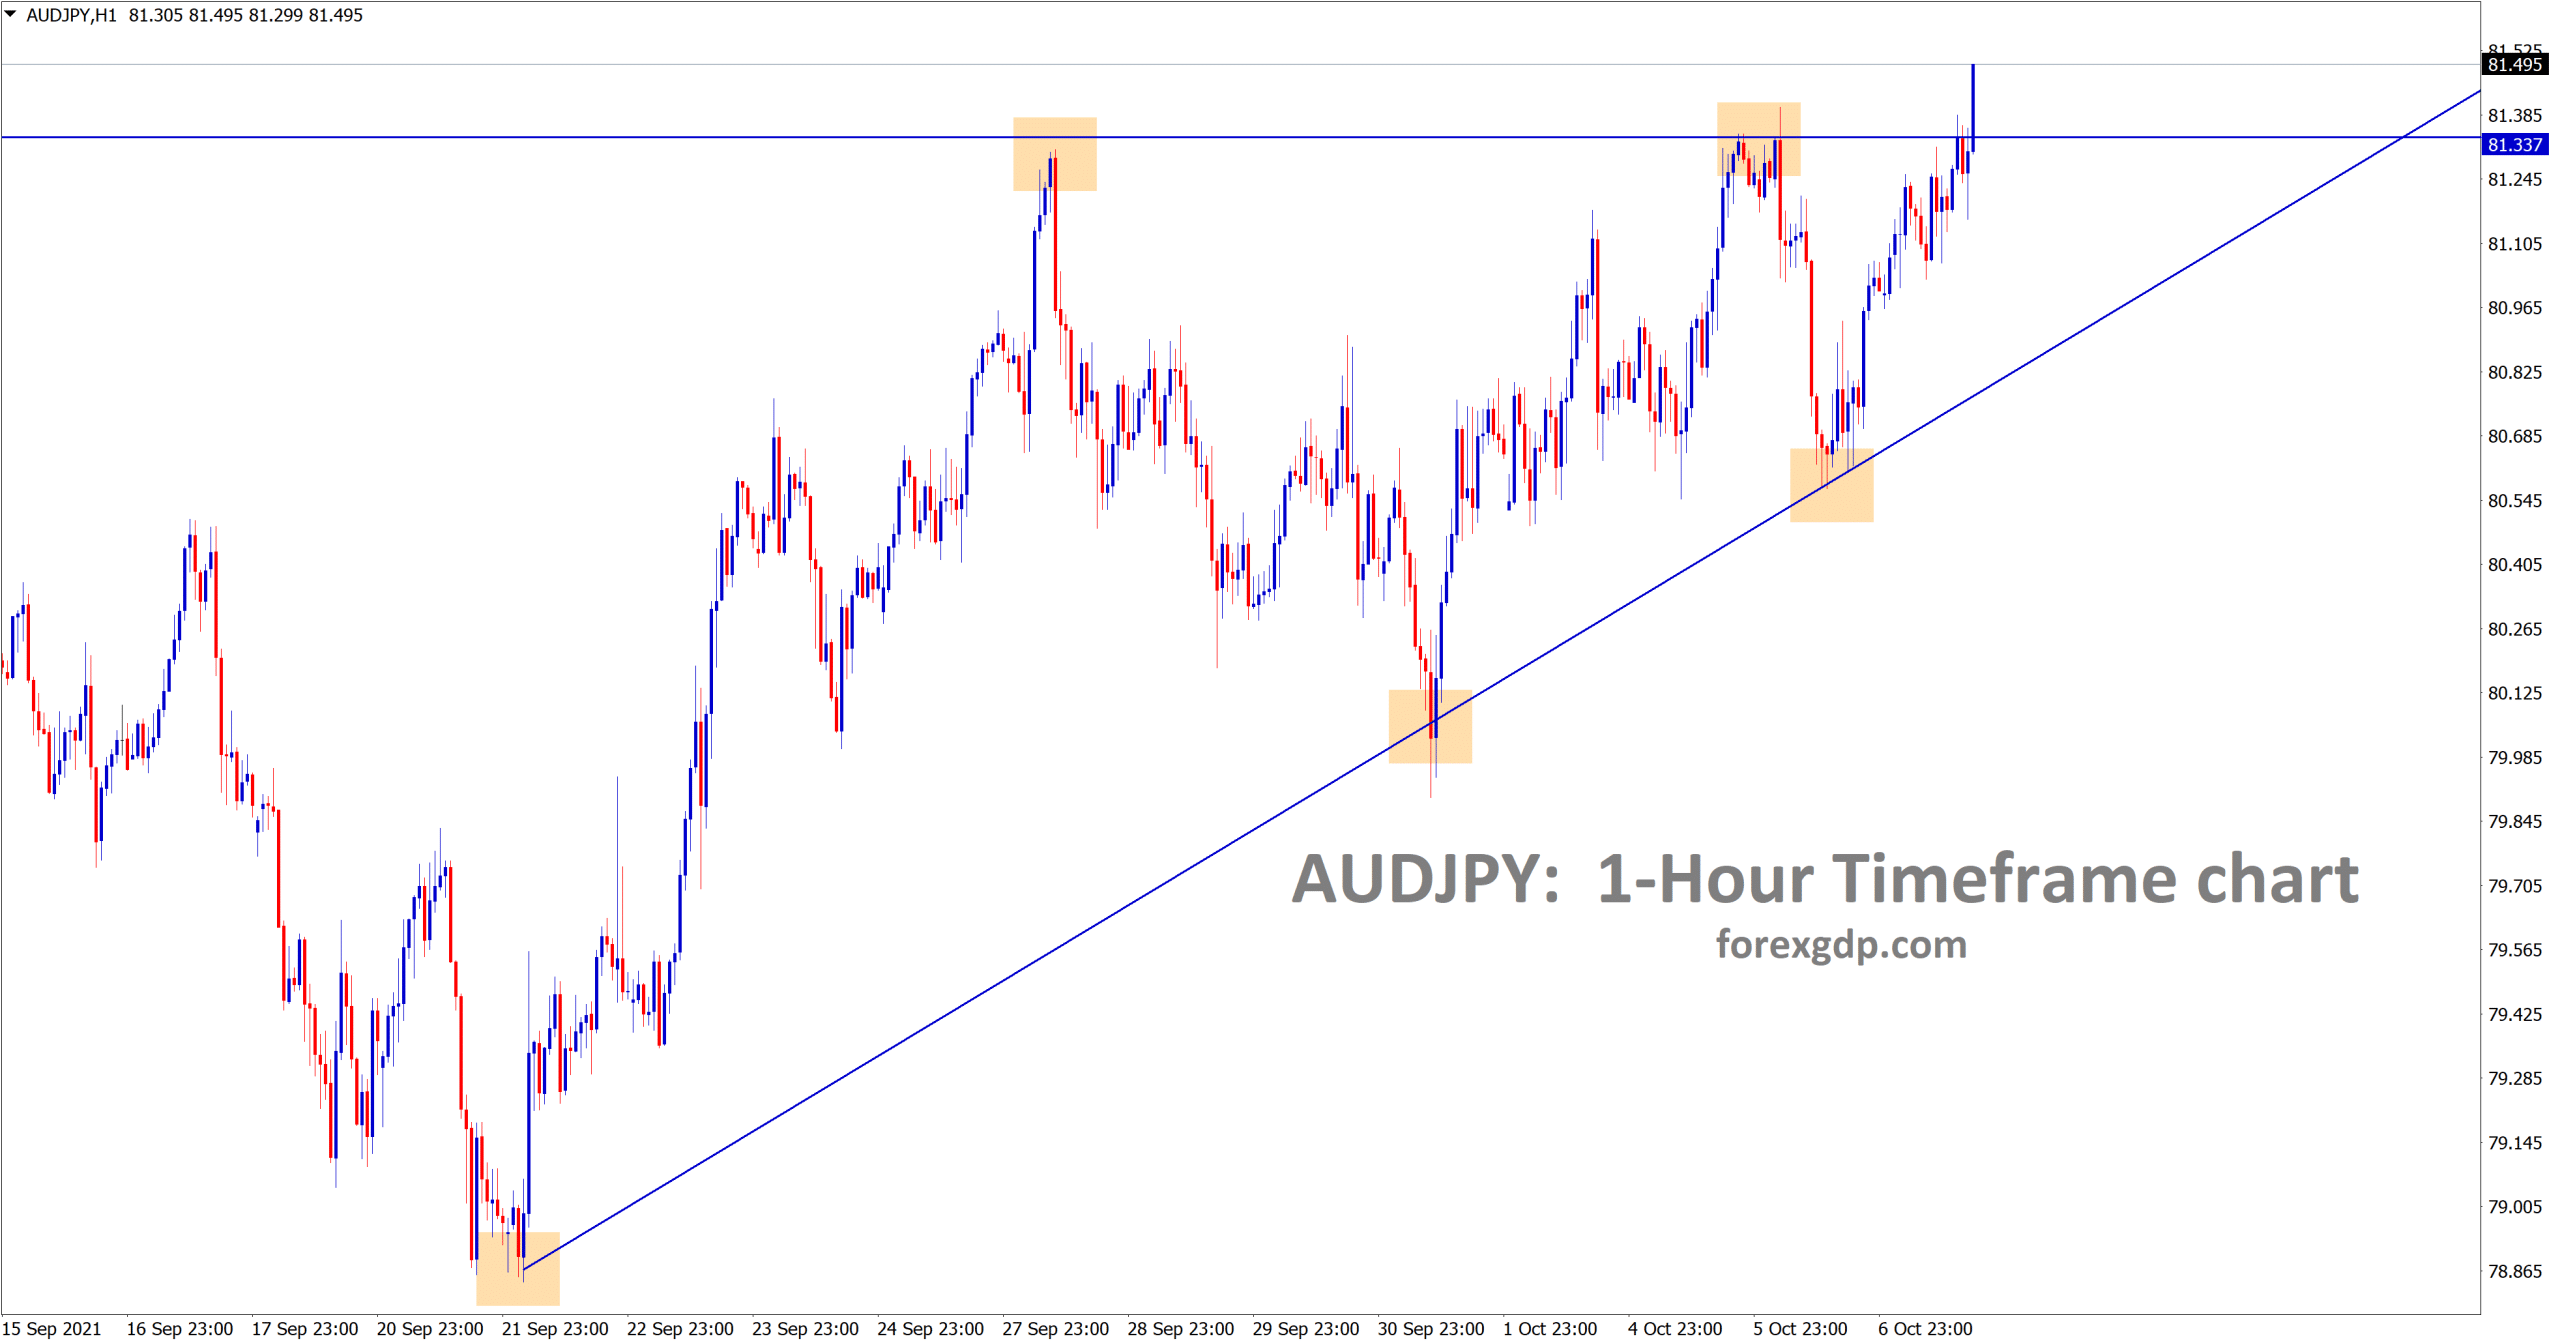 AUDJPY is breaking the top of the ascending triangle pattern